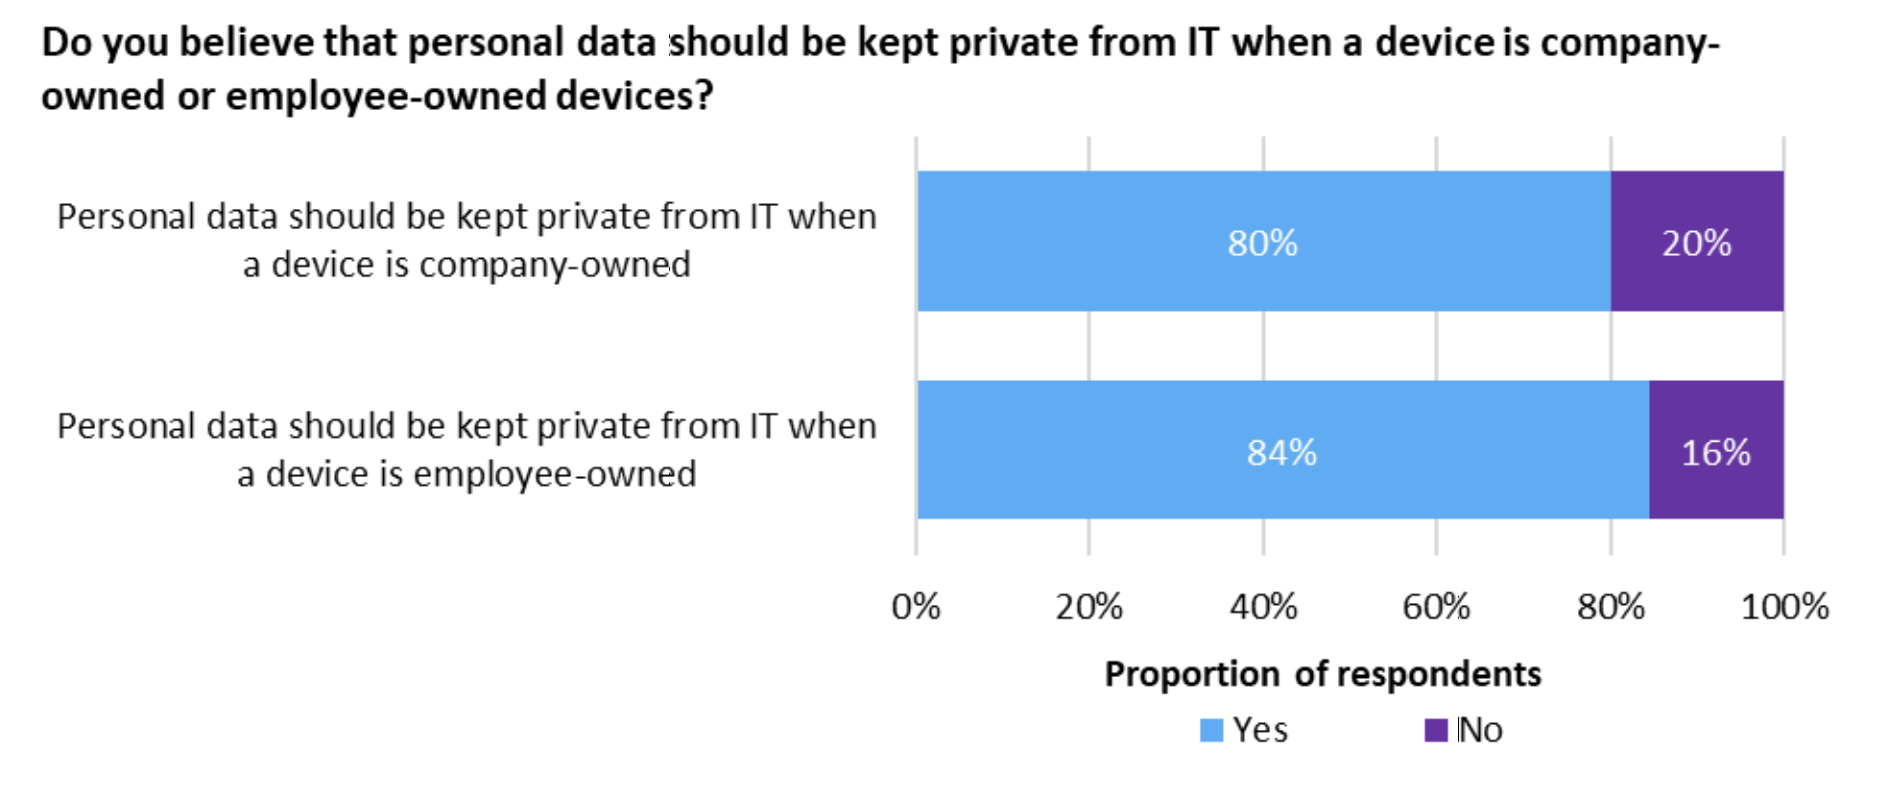 Businesses value personal data privacy